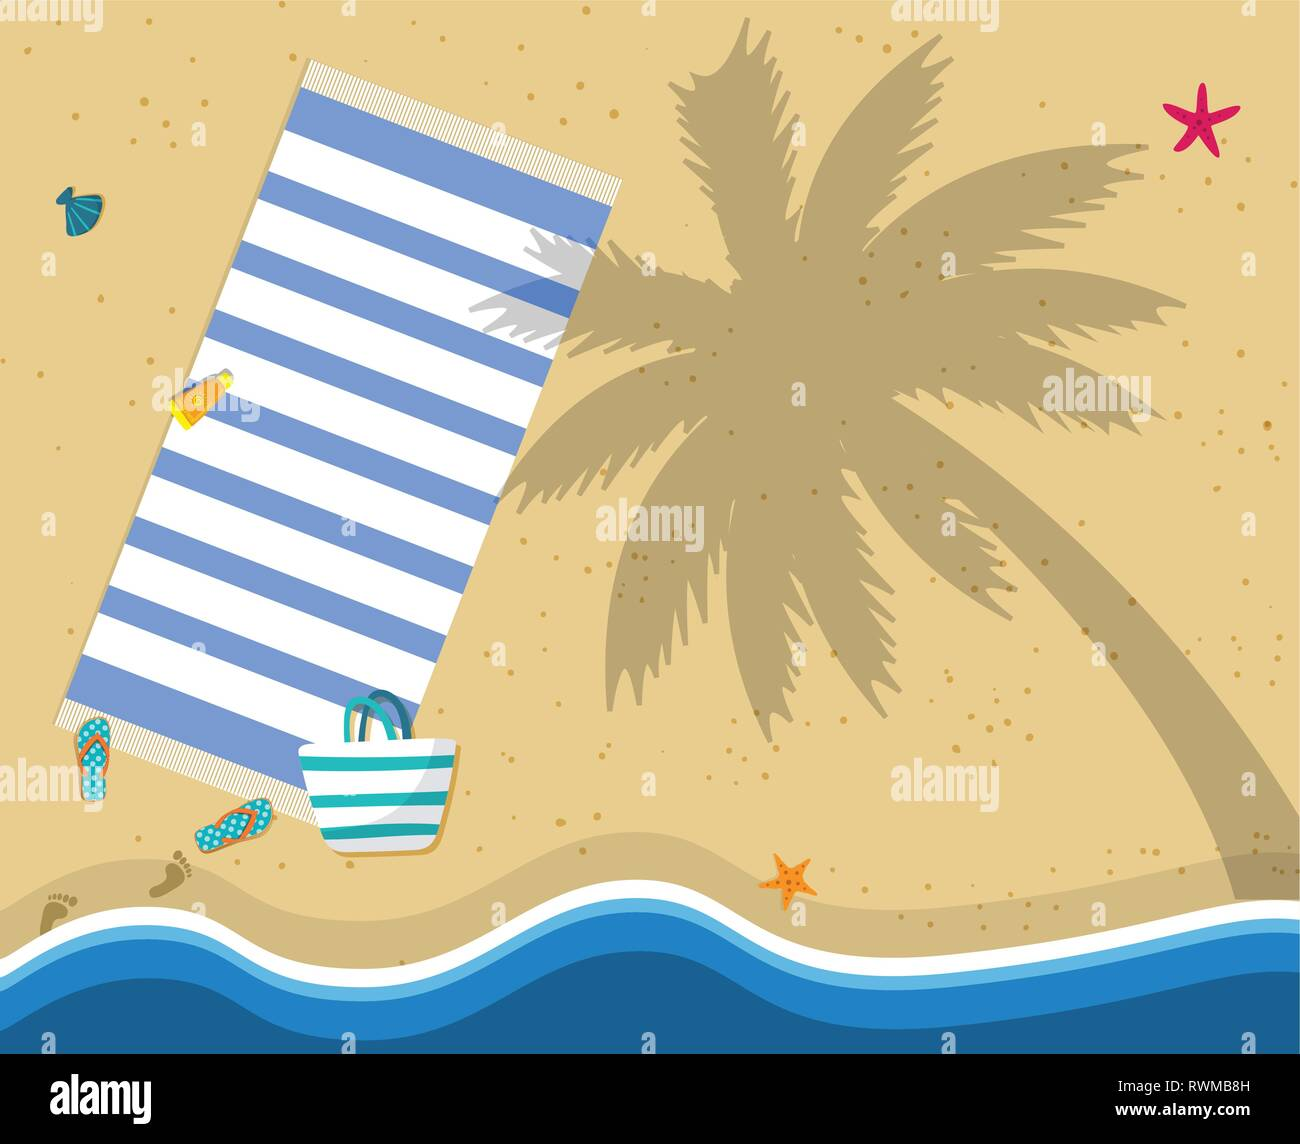 Summer Beach Vacation Holidays Poster, Wallpaper. Copy Space. Top View of Blue Ocean and Golden Sand Beach Shore with Towel, Palm Tree Shadow, Flip Fl - Stock Vector